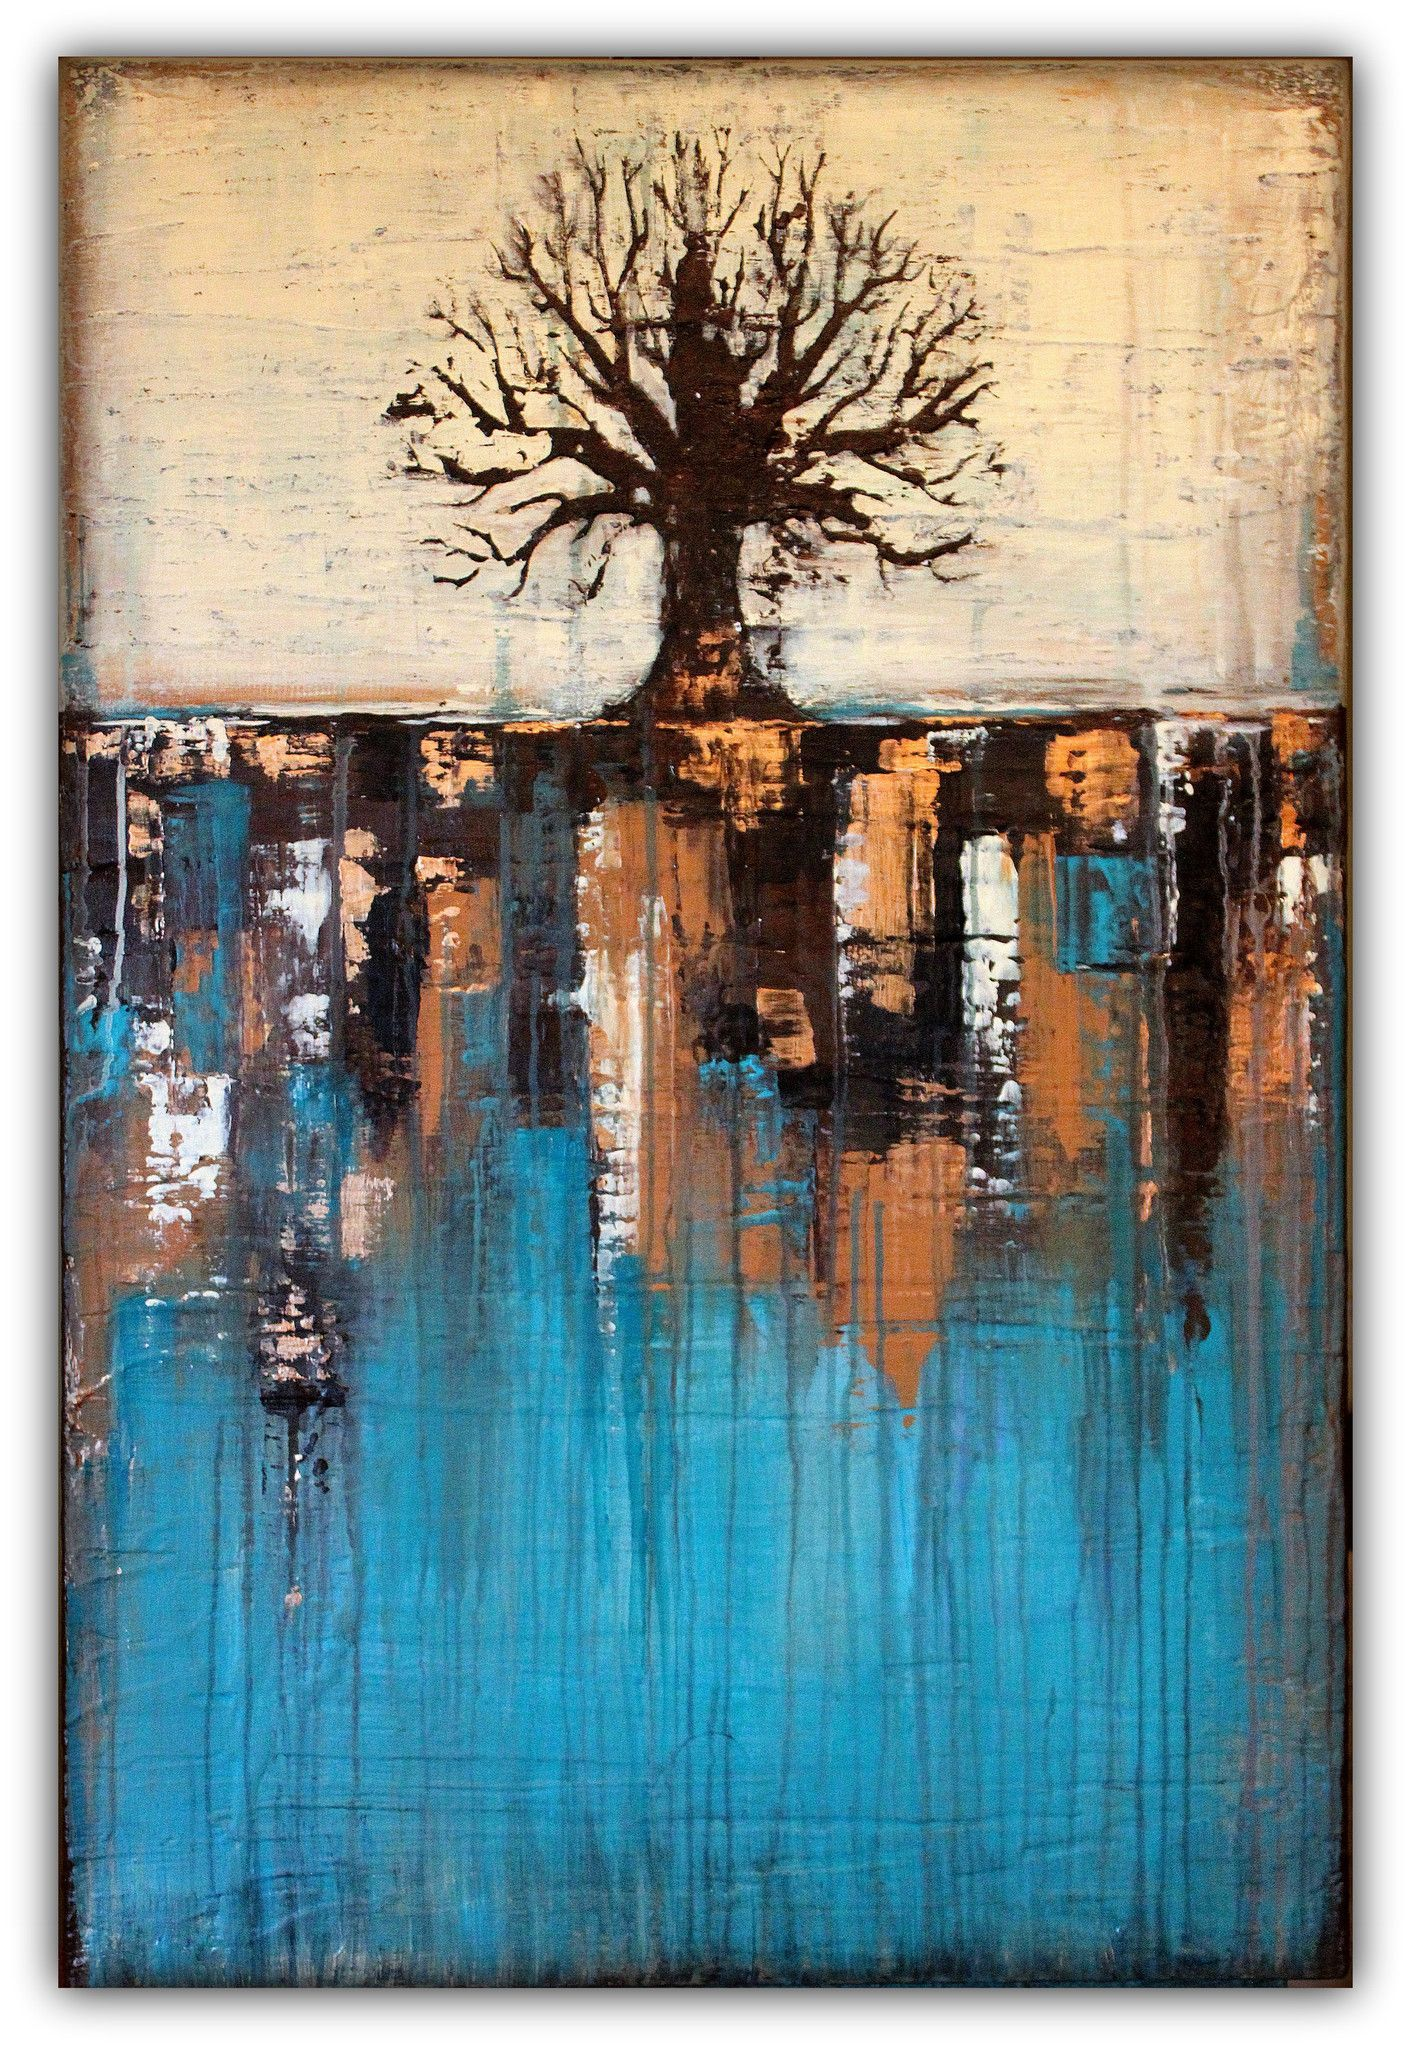 Art Textures Techniques Abstract Tree In Teal Landscape Sold GrΘup BΘard Shop